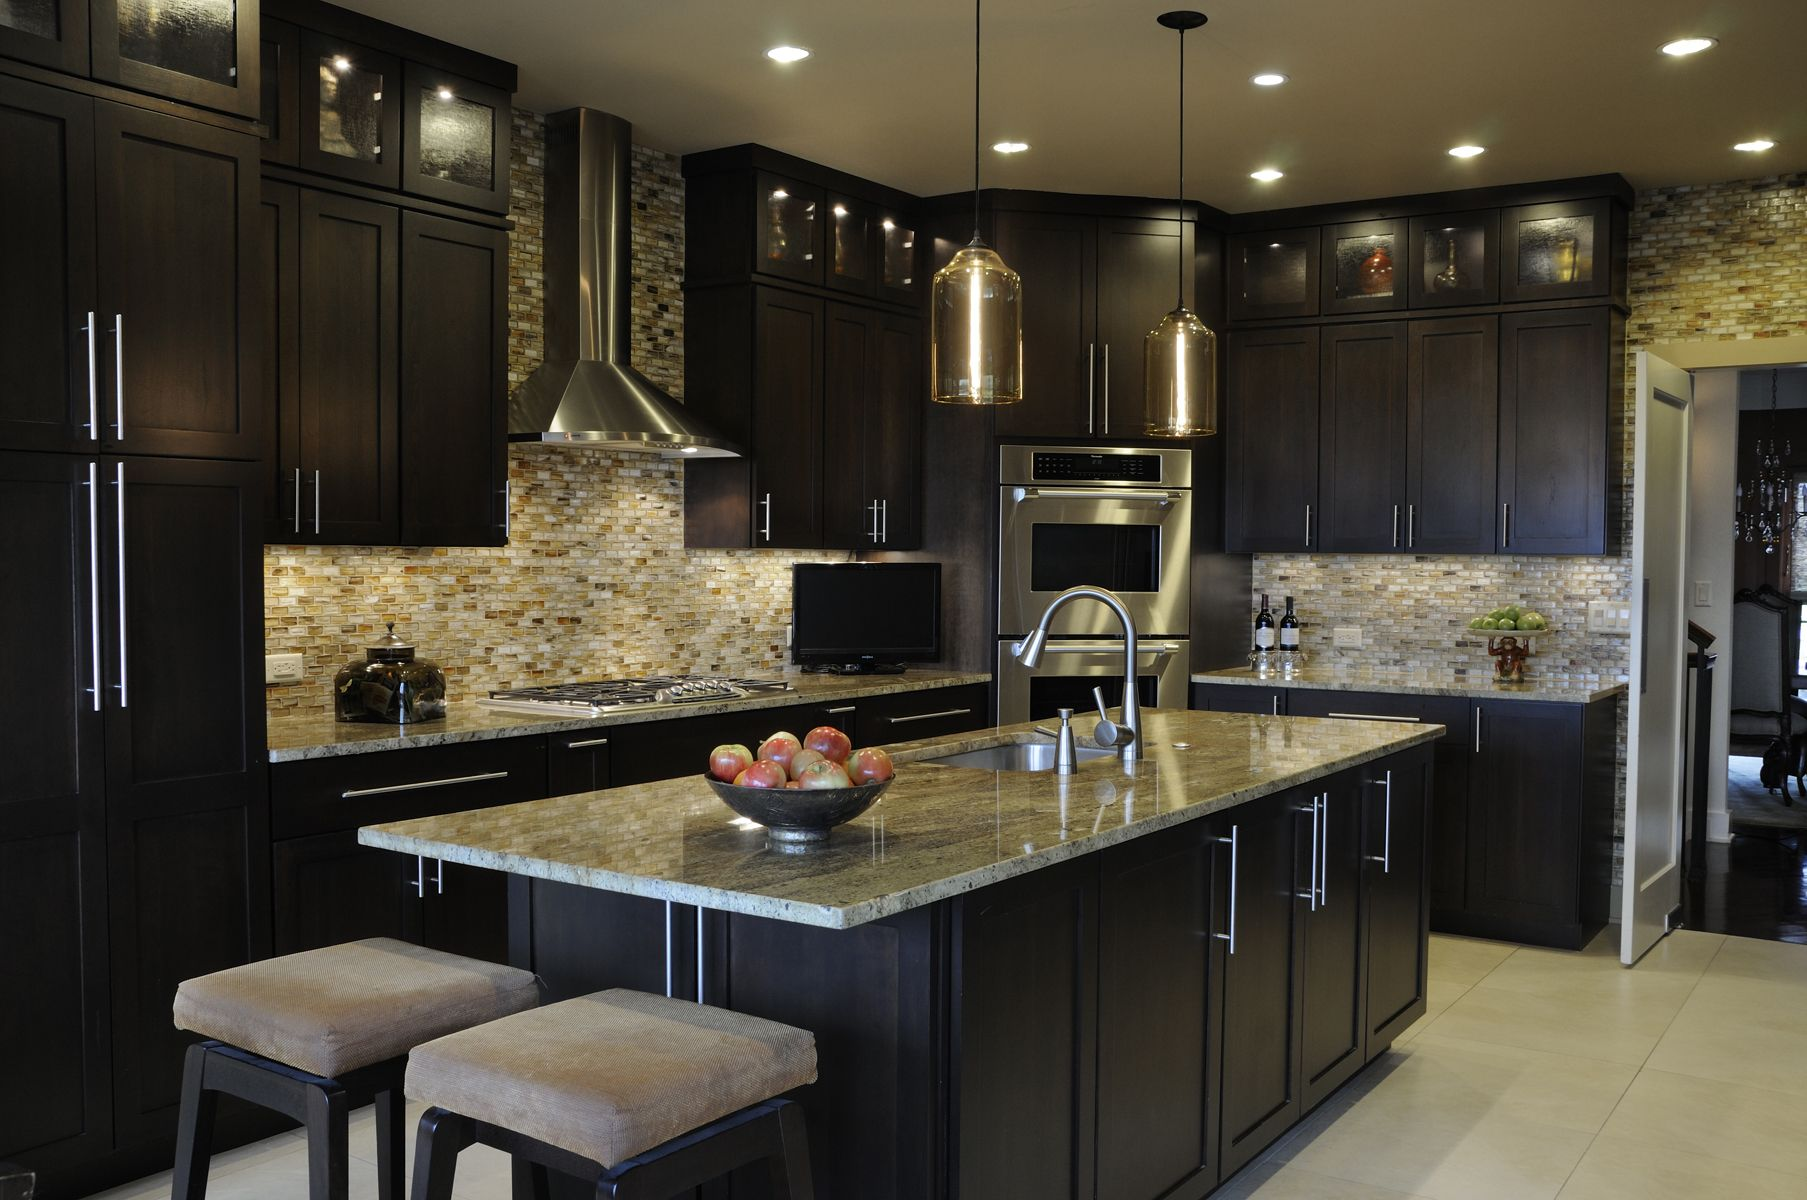 Bon Gourmet Kitchen Designs | Gourmet Kitchen With Modern Design And Breakfast  Table Overlooking The .